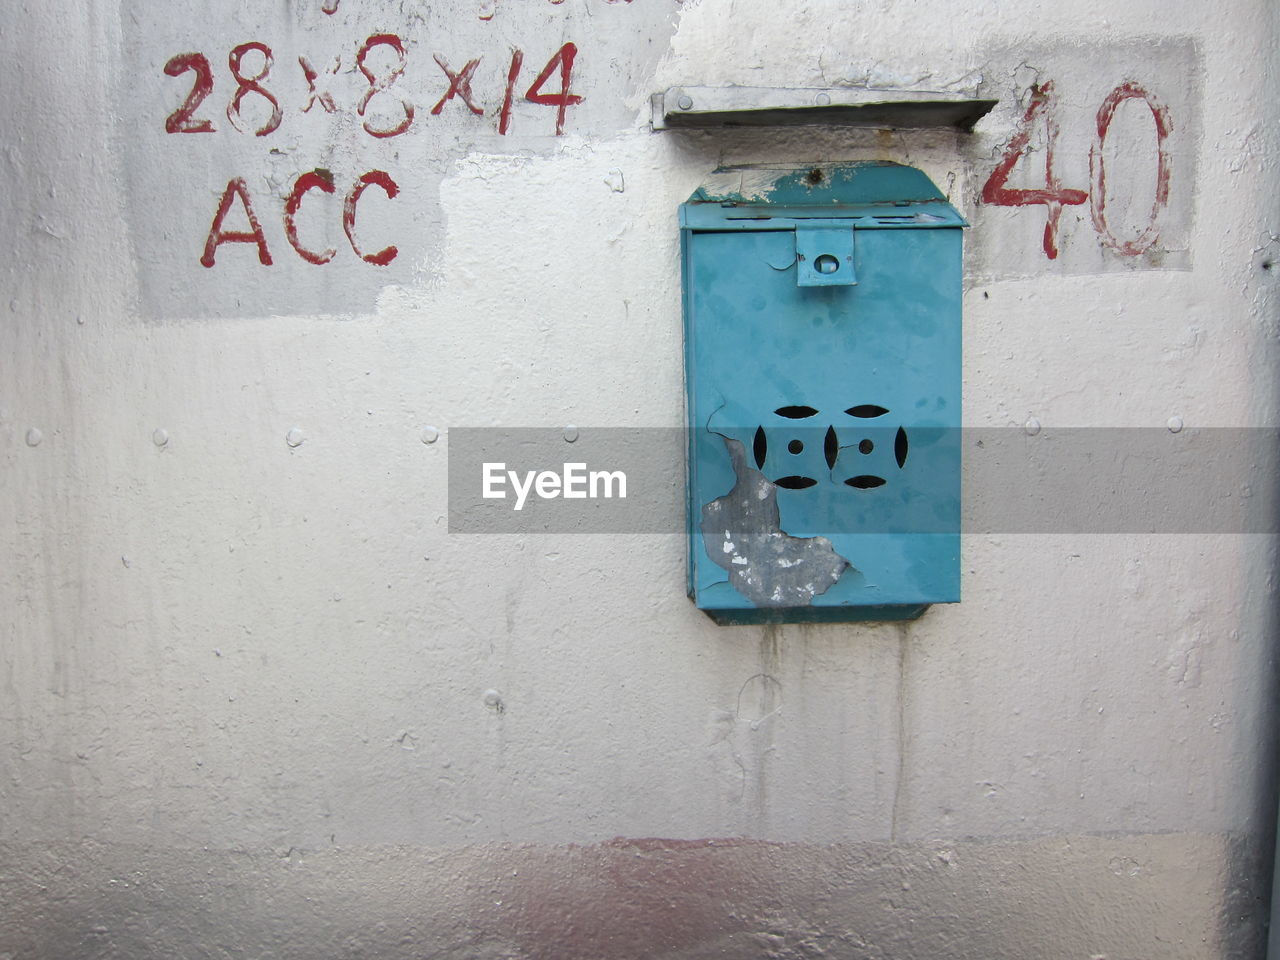 communication, wall - building feature, no people, text, built structure, sign, western script, architecture, day, safety, close-up, security, wall, building exterior, door, number, outdoors, blue, information, electricity, power supply